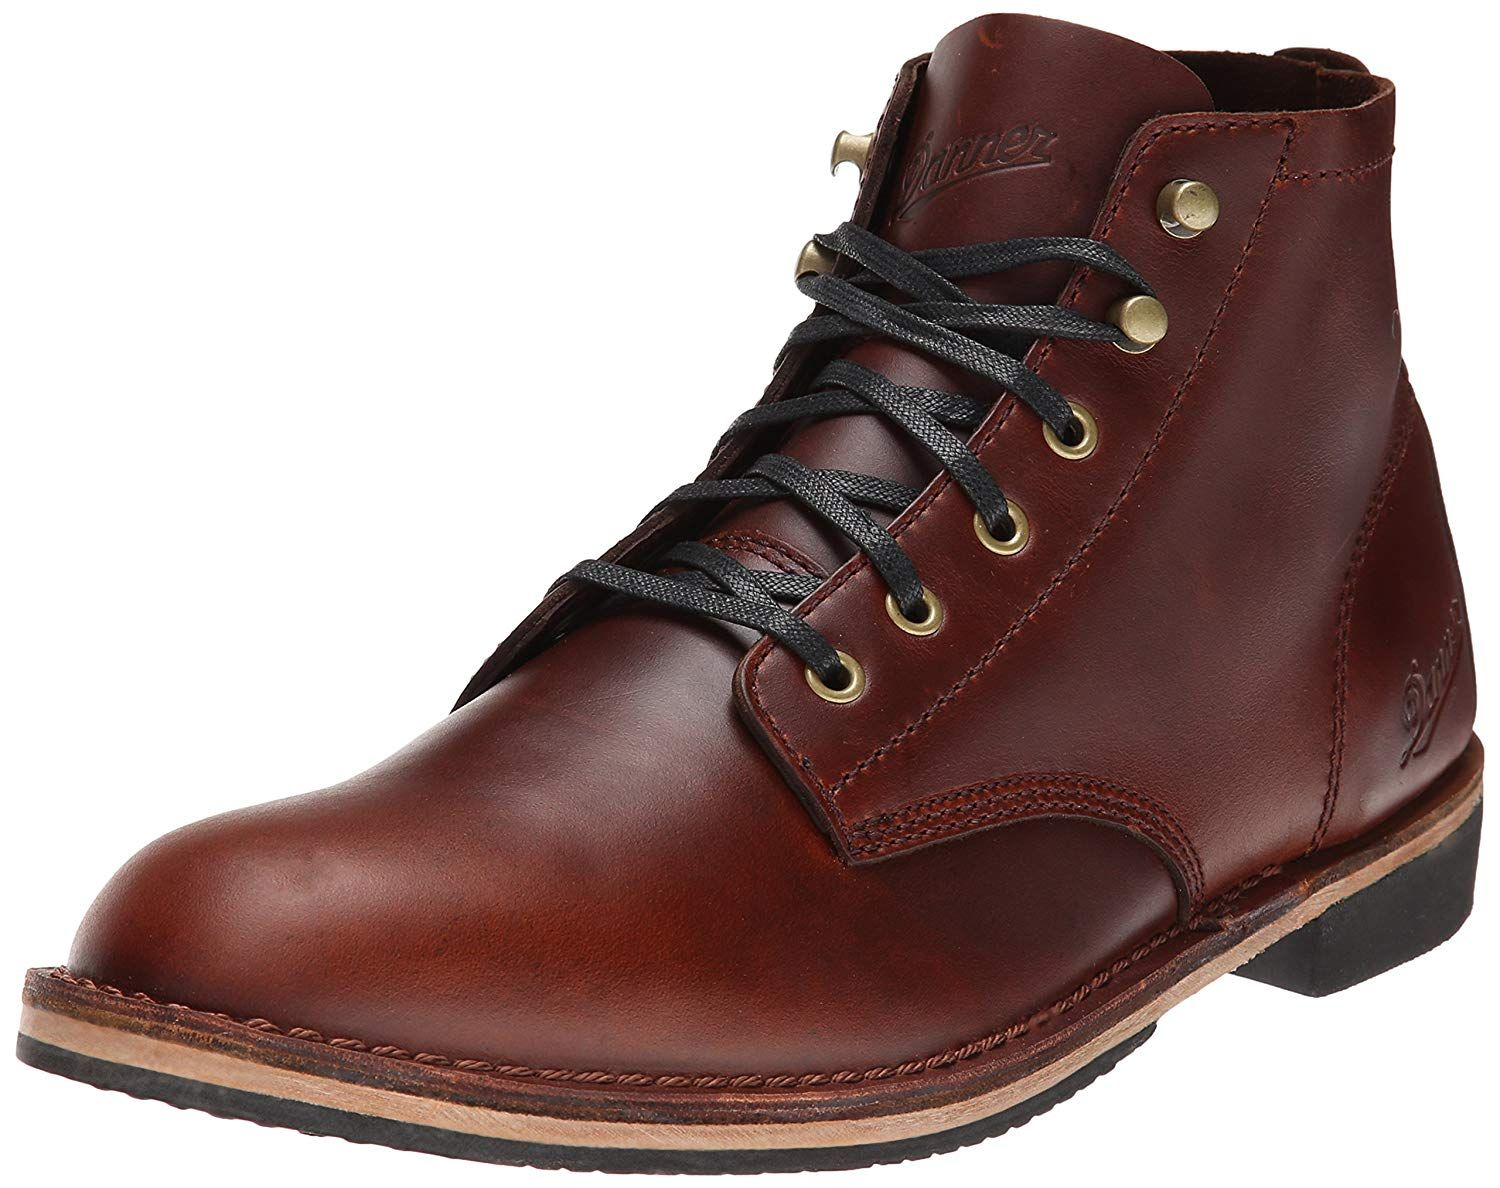 Danner mens jack ii lifestyle boot see the photo link